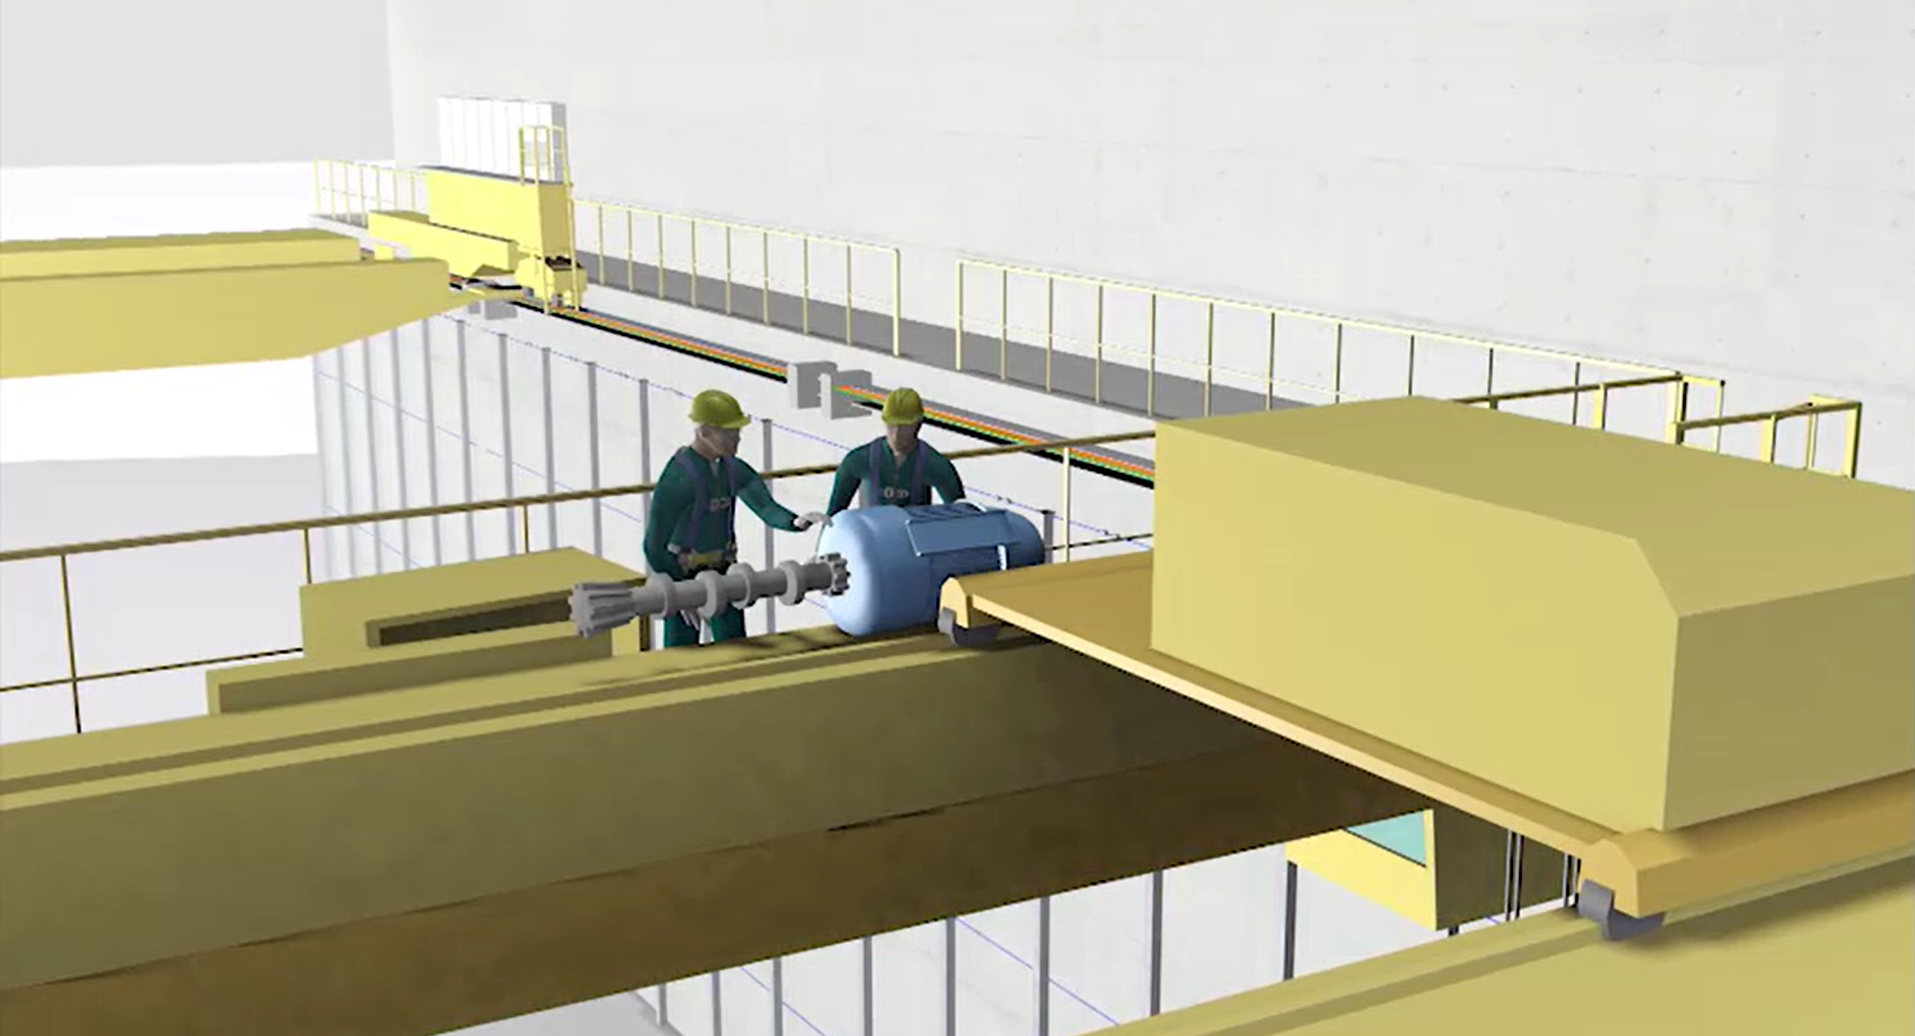 Rendered drawing of a manufacturing near miss